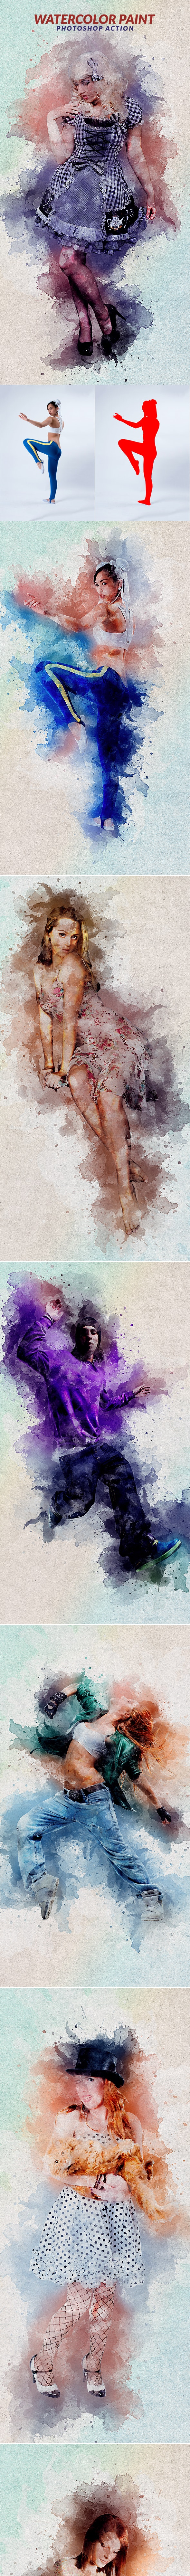 Watercolor Paint Photoshop Action - Photo Effects Actions